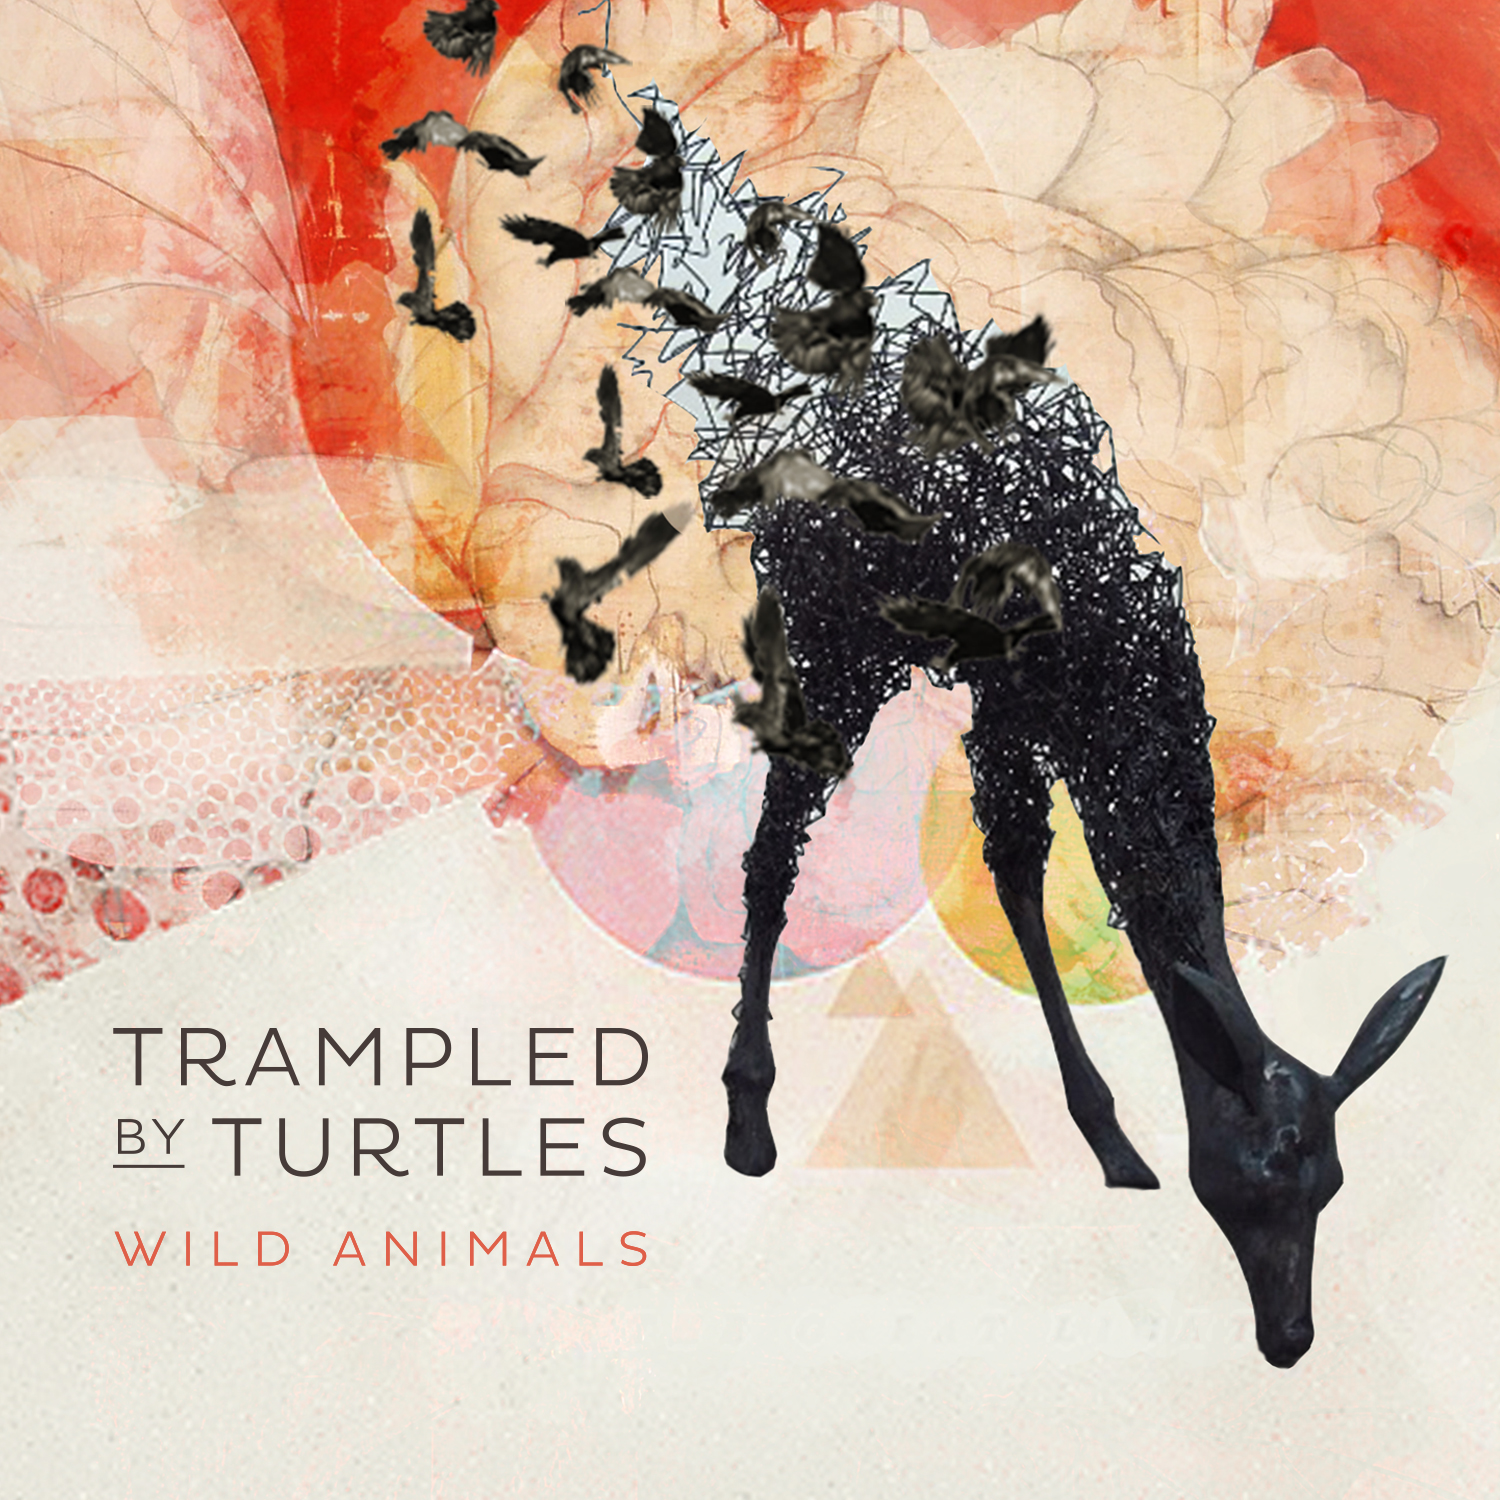 trampled-by-turtles-wild-animals